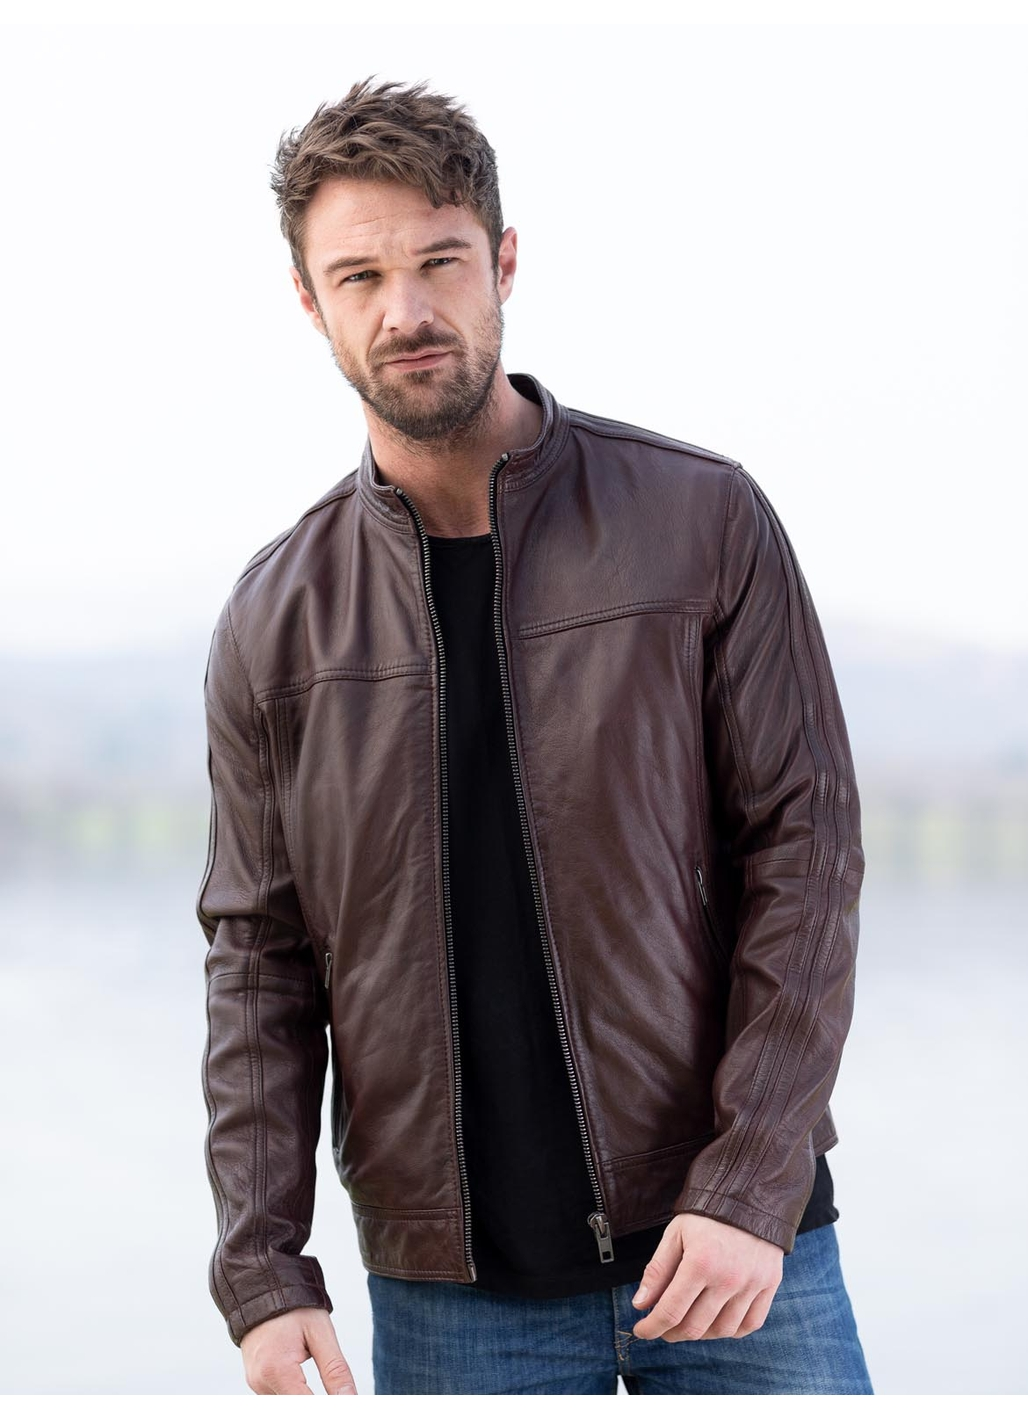 Eamont Leather Jacket in Burgundy